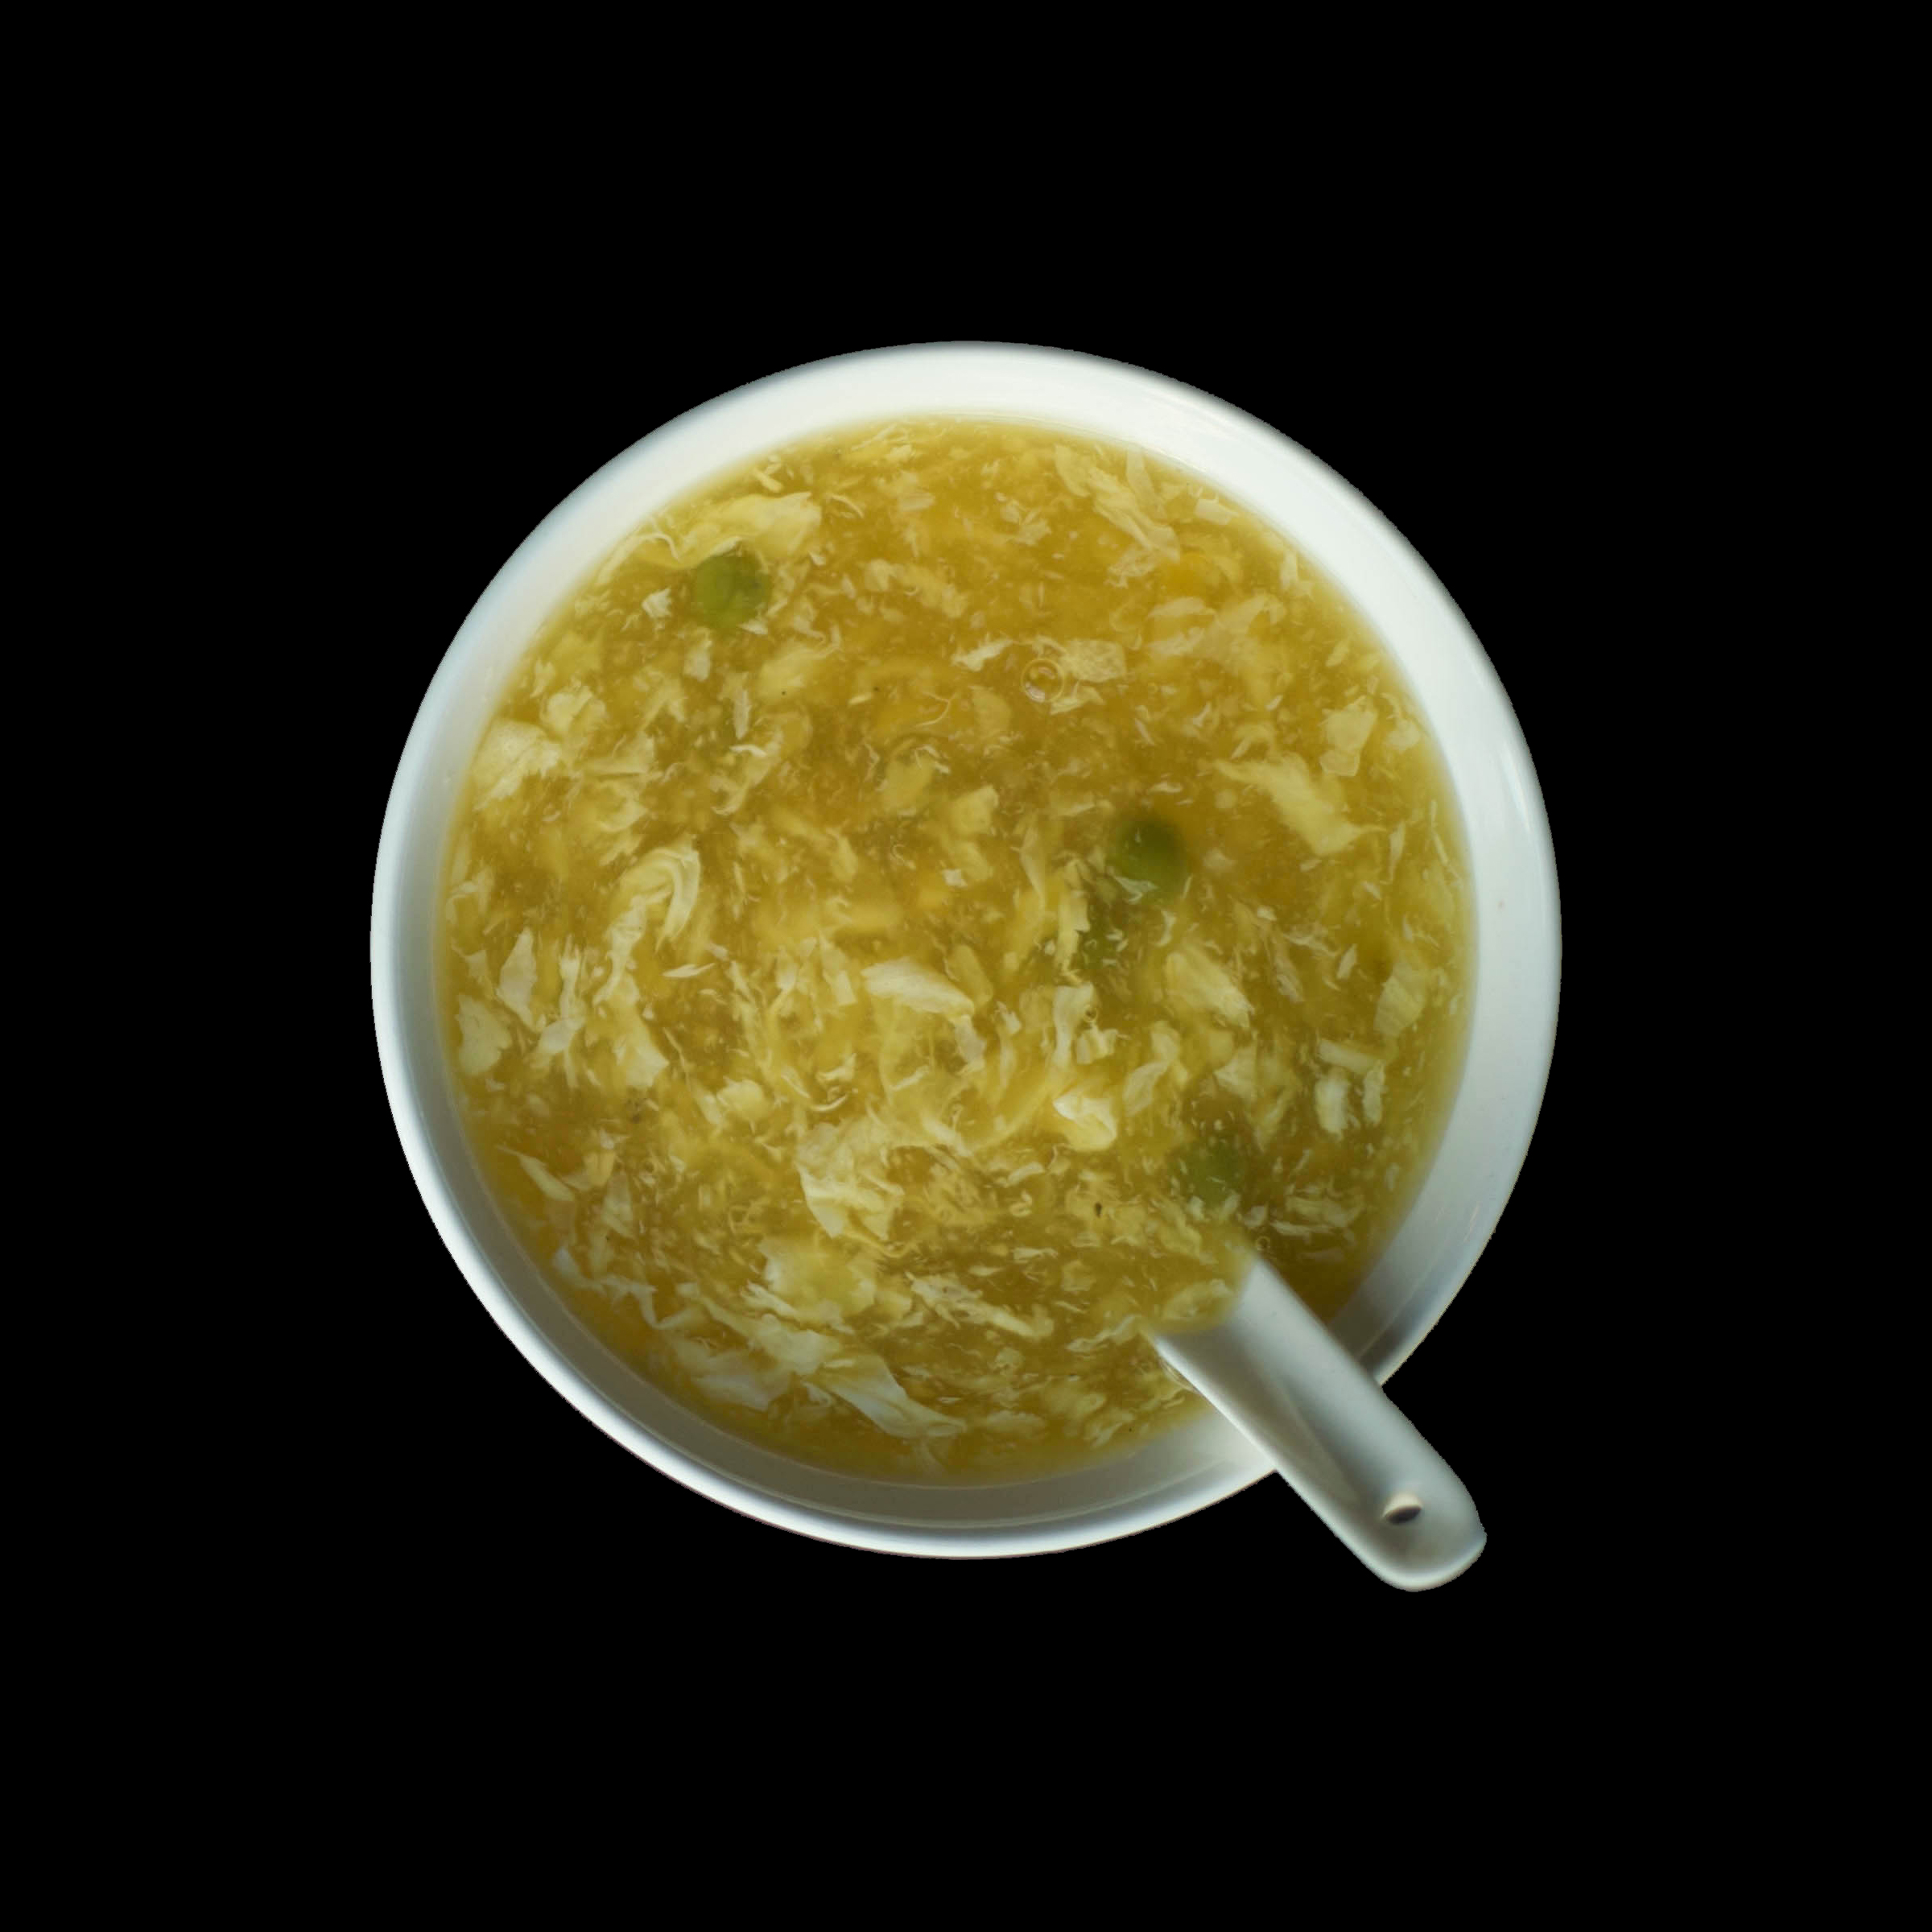 42. 蛋花汤 Egg Flower Soup Image